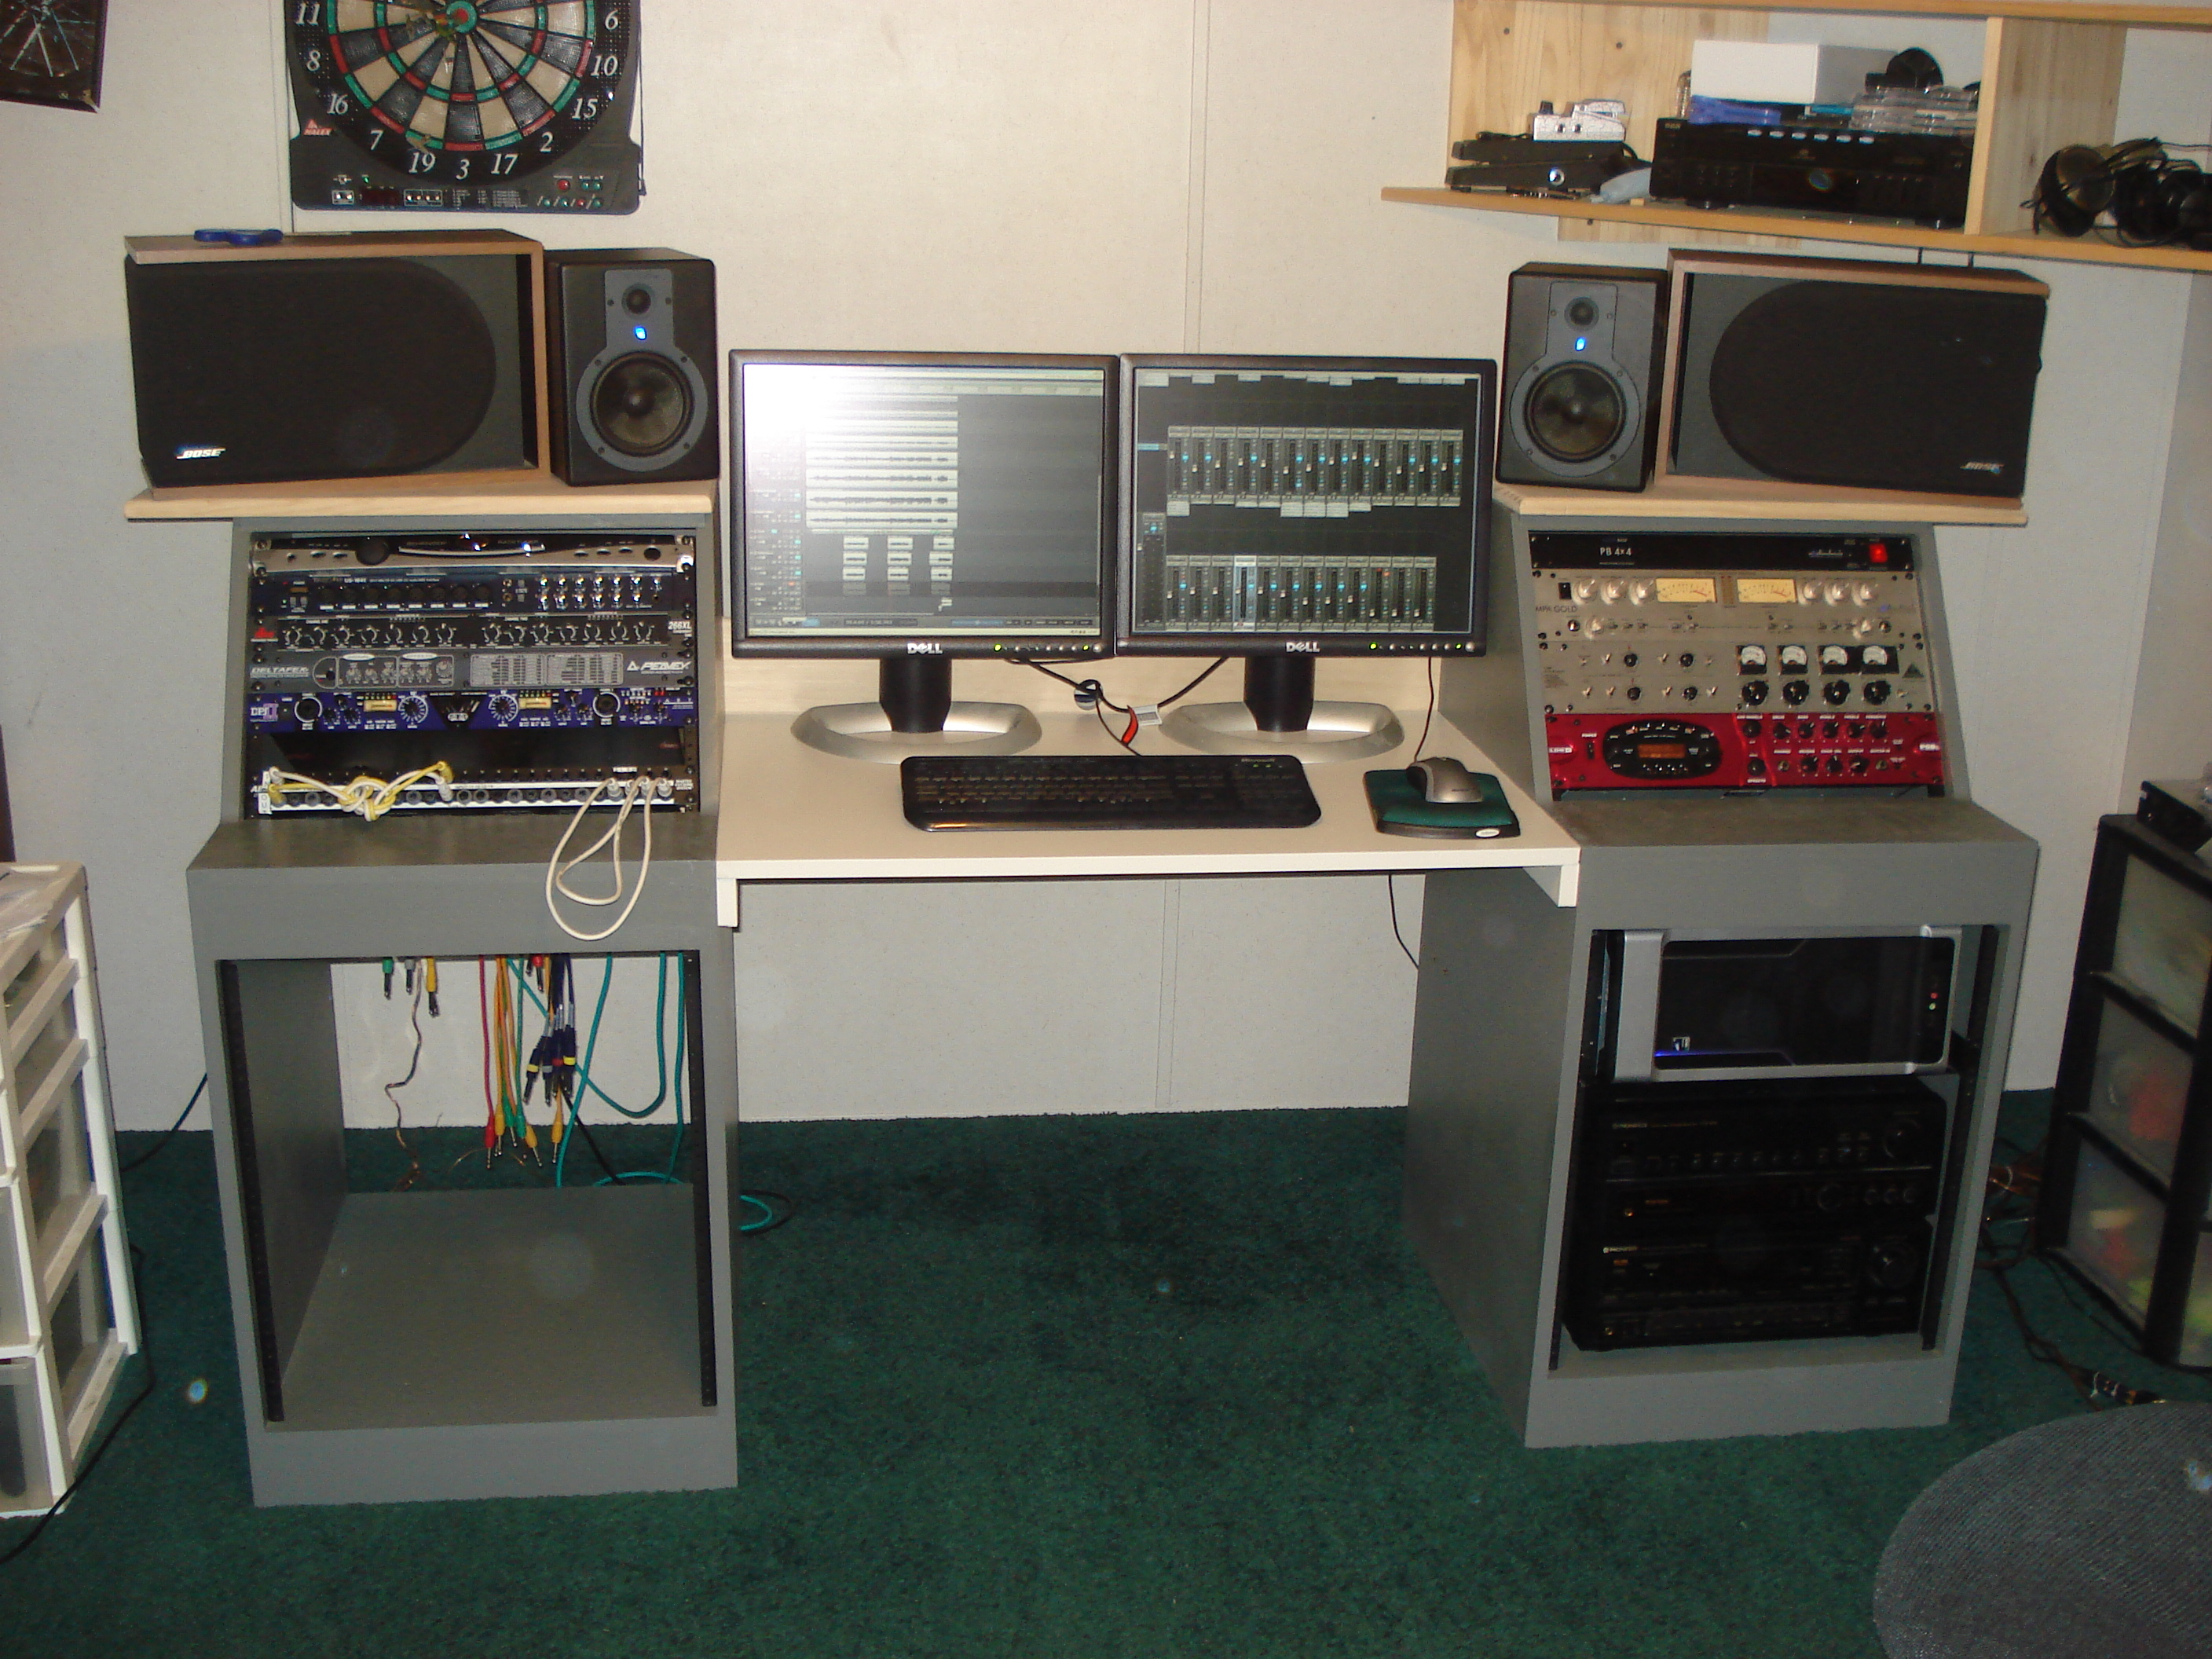 new desk build for bedroom studio gearslutz pro audio community. Black Bedroom Furniture Sets. Home Design Ideas